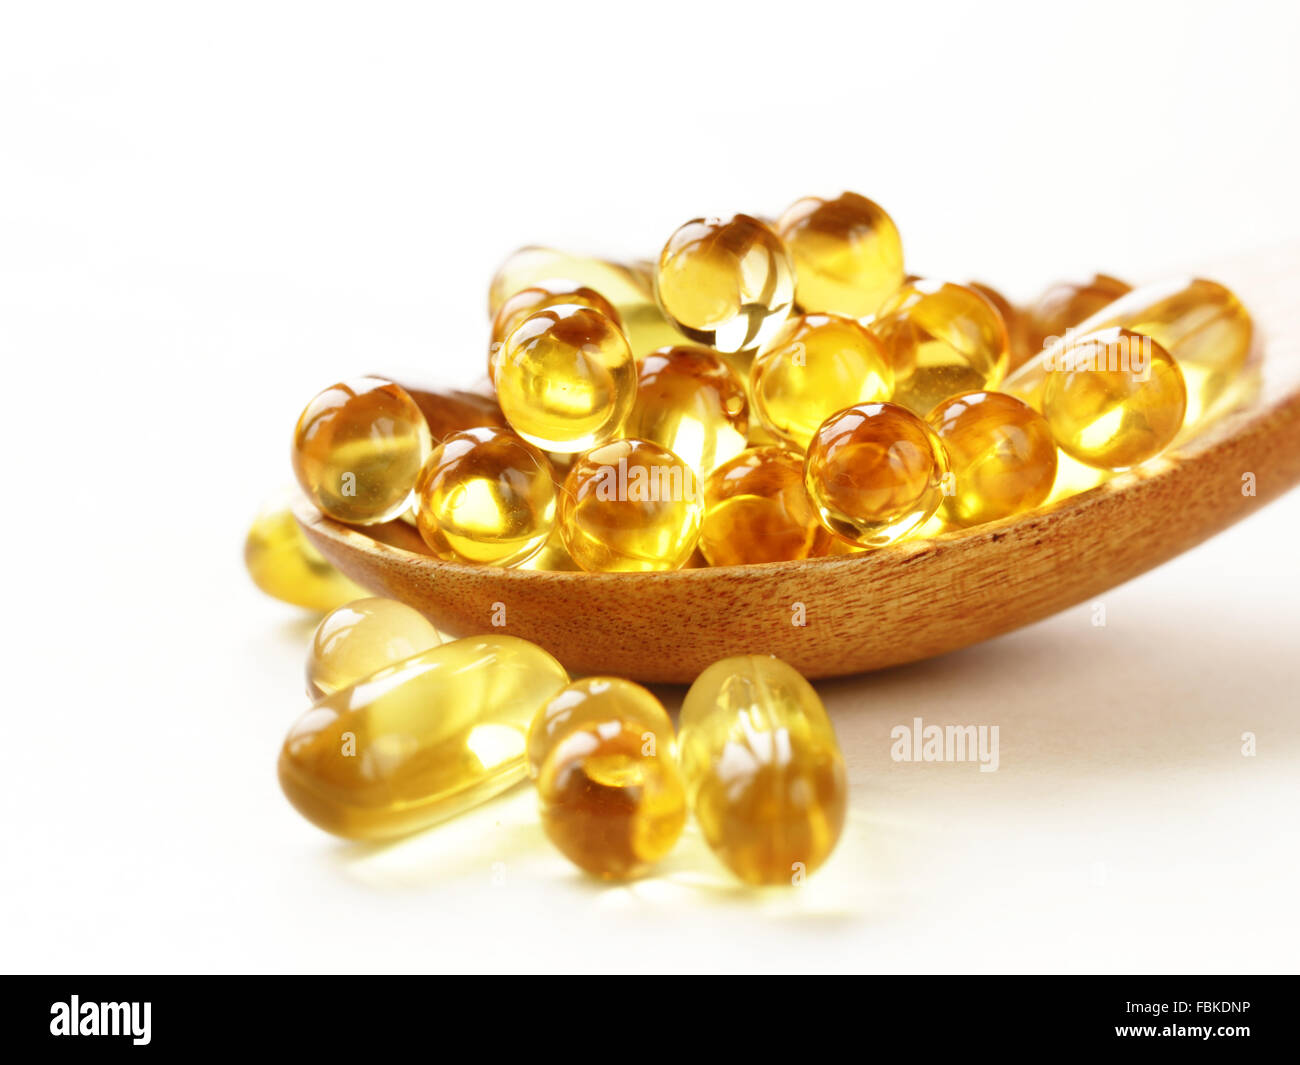 Fish Oil And Spoon Stock Photos & Fish Oil And Spoon Stock